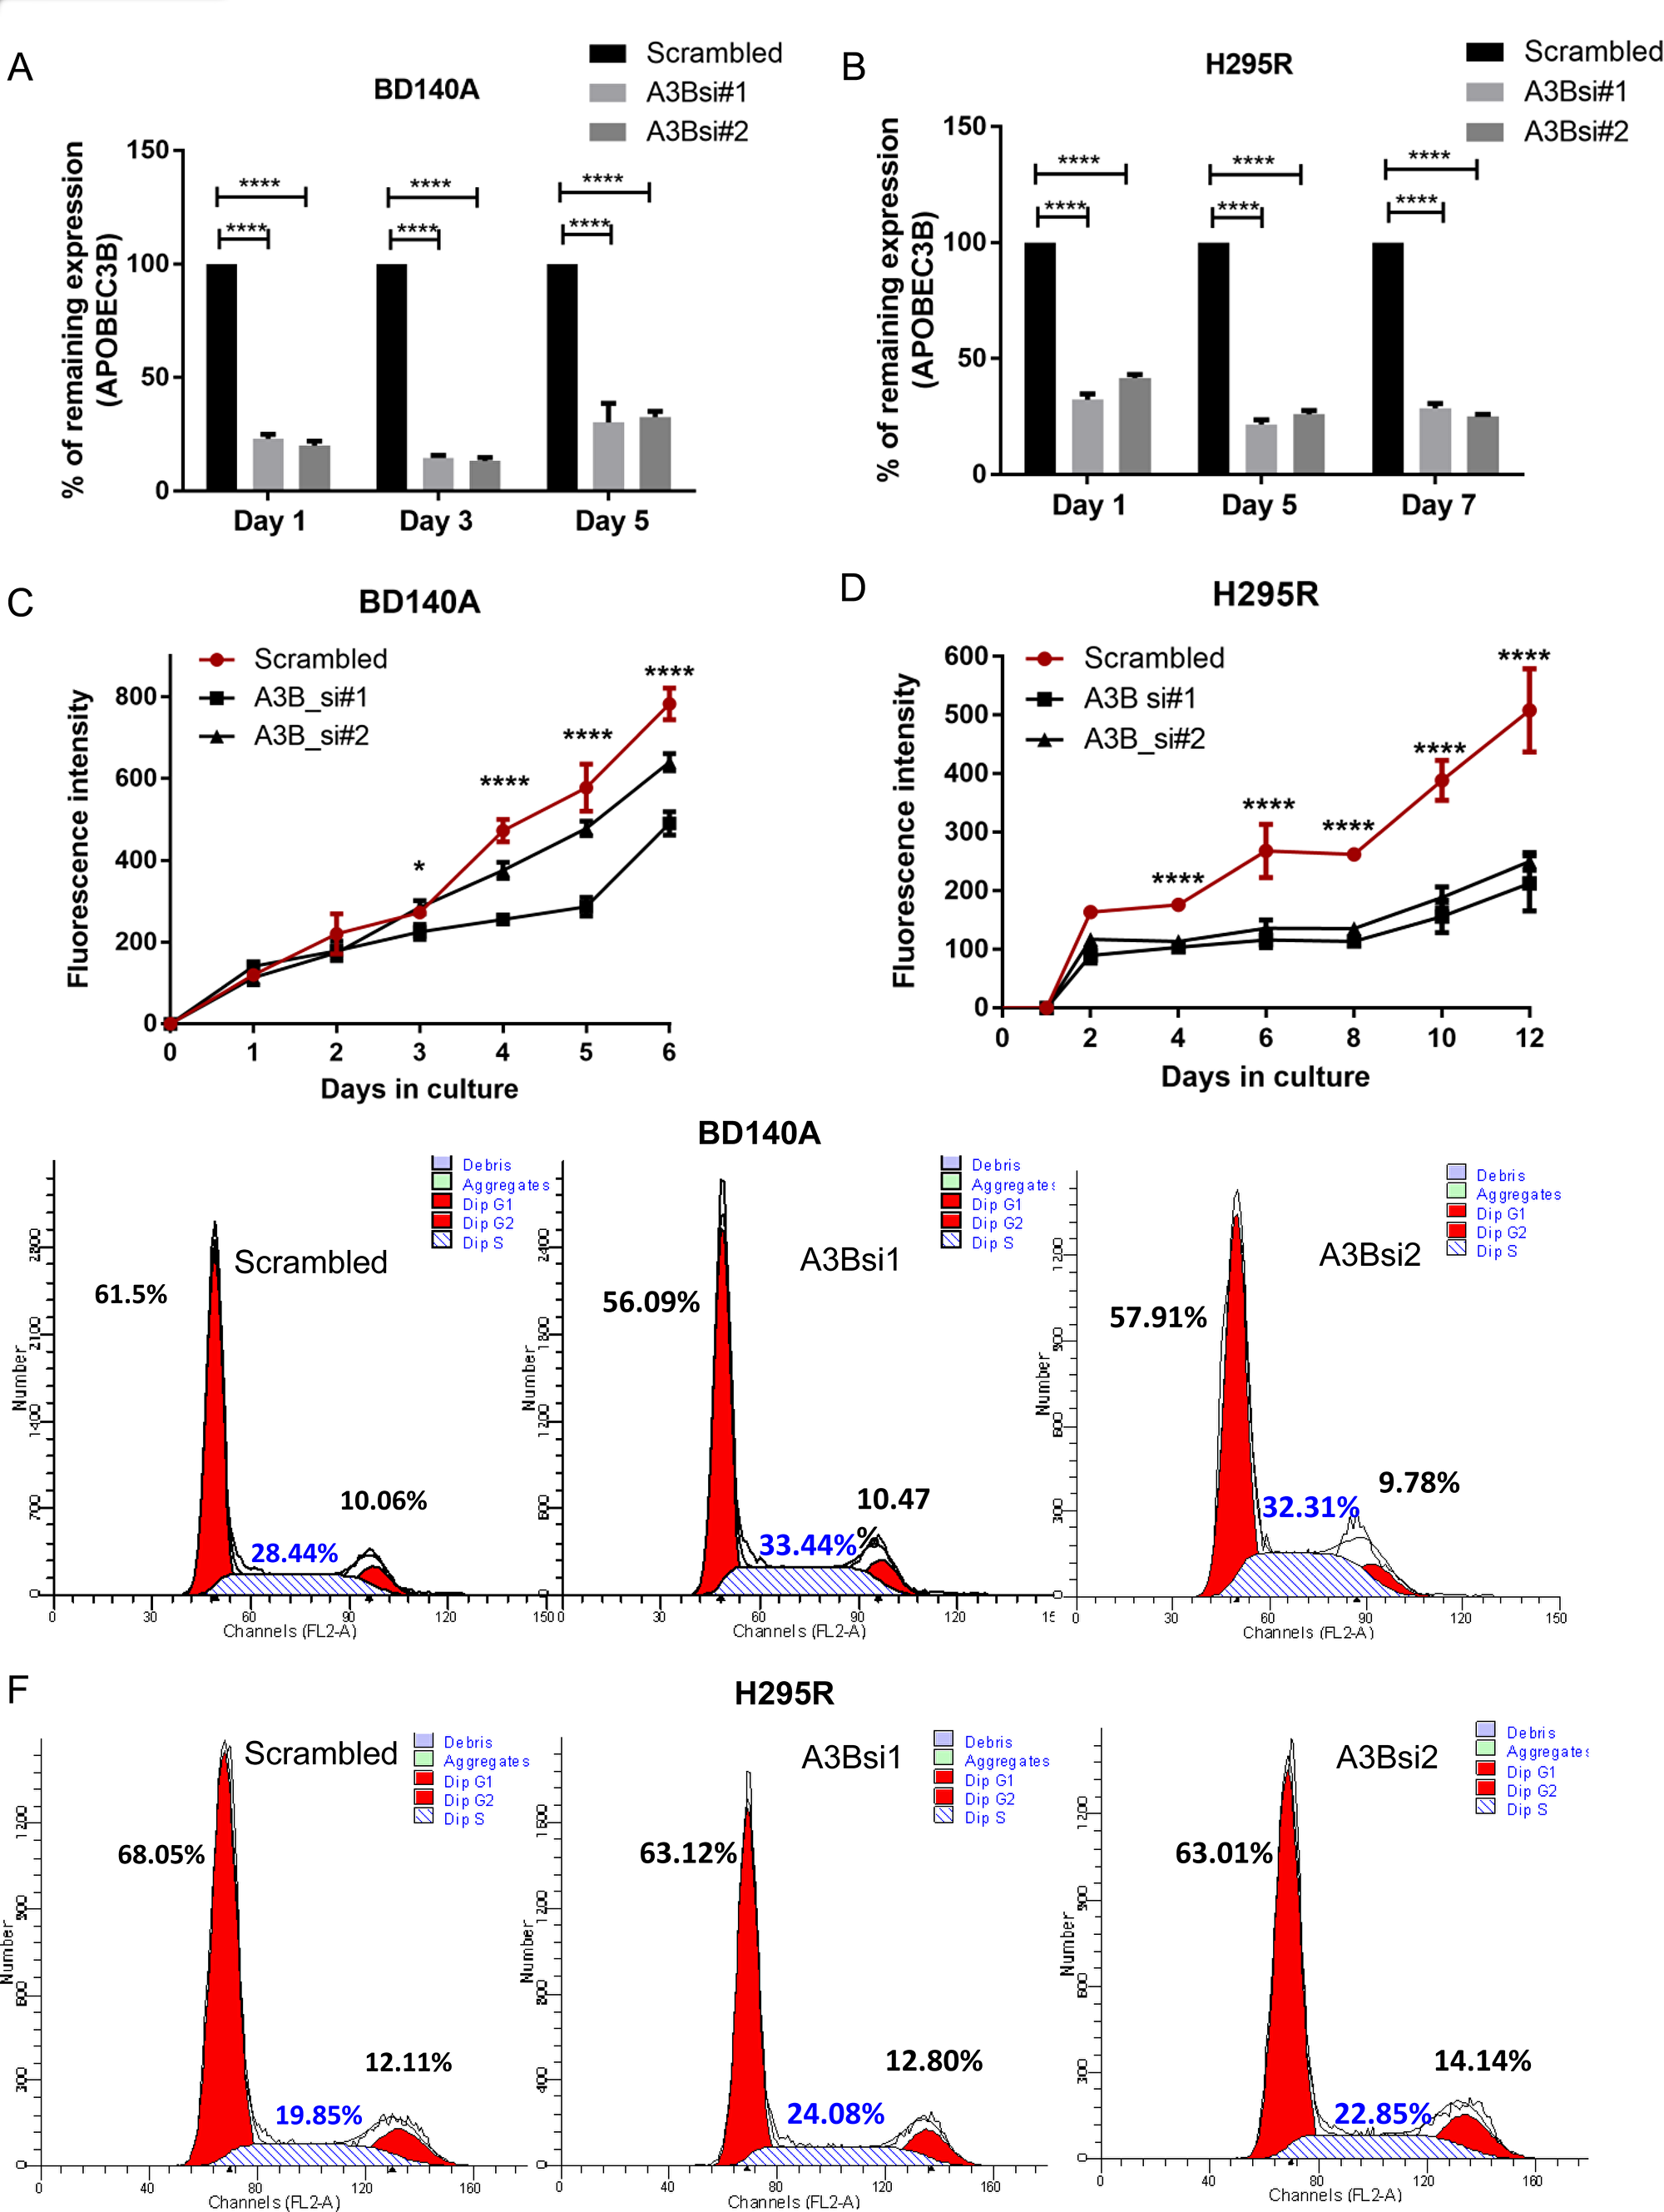 Knockdown of APOBEC3B reduces cell proliferation and induces S phase arrest.